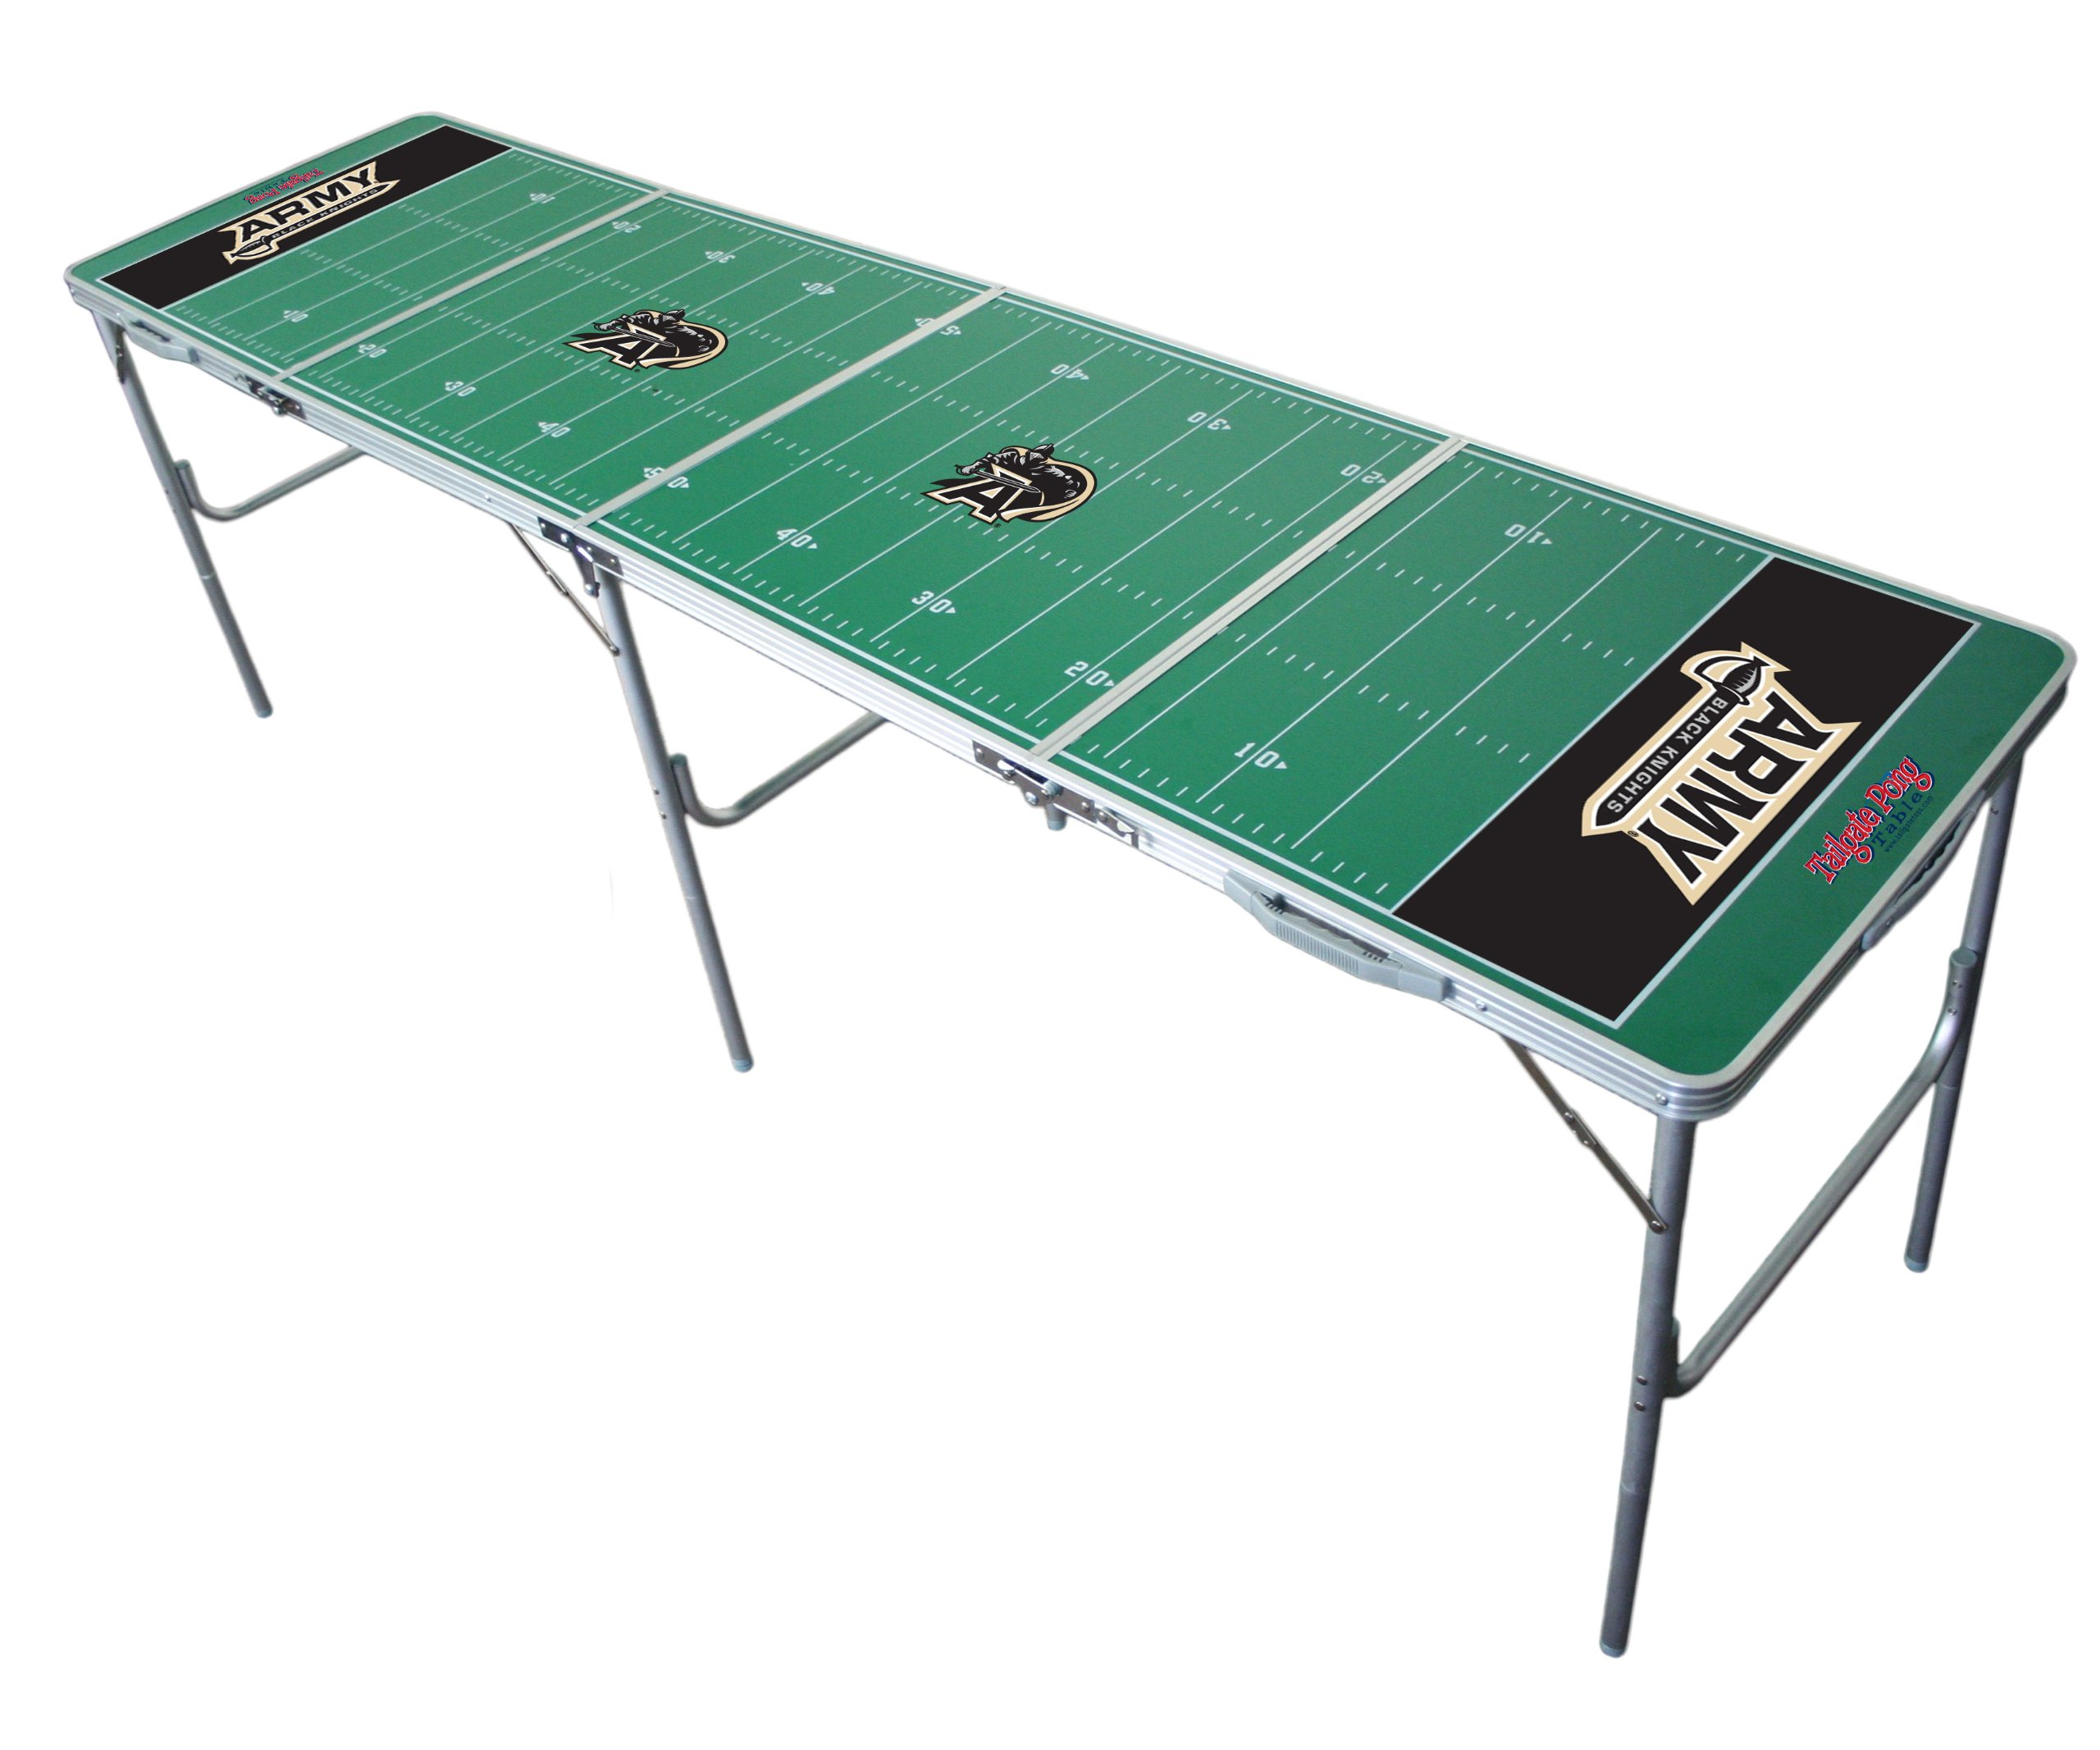 Army Black Knights 2x8 Tailgate Table by Wild Sports by Wild Sports